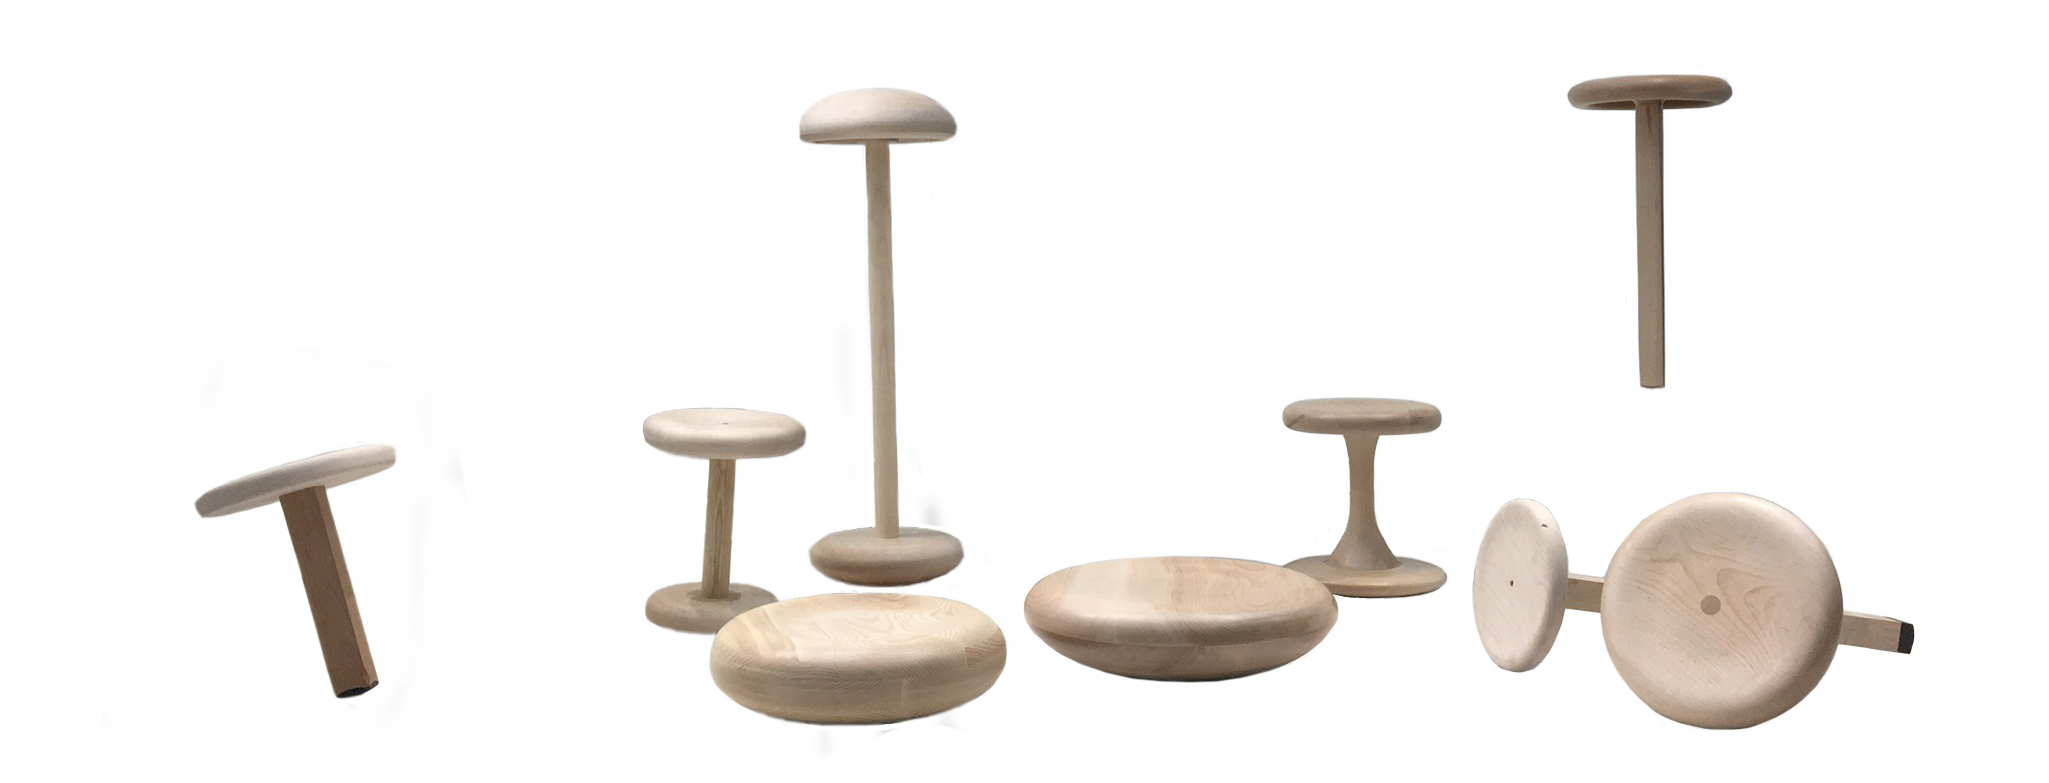 People and stools 10 cropped.png